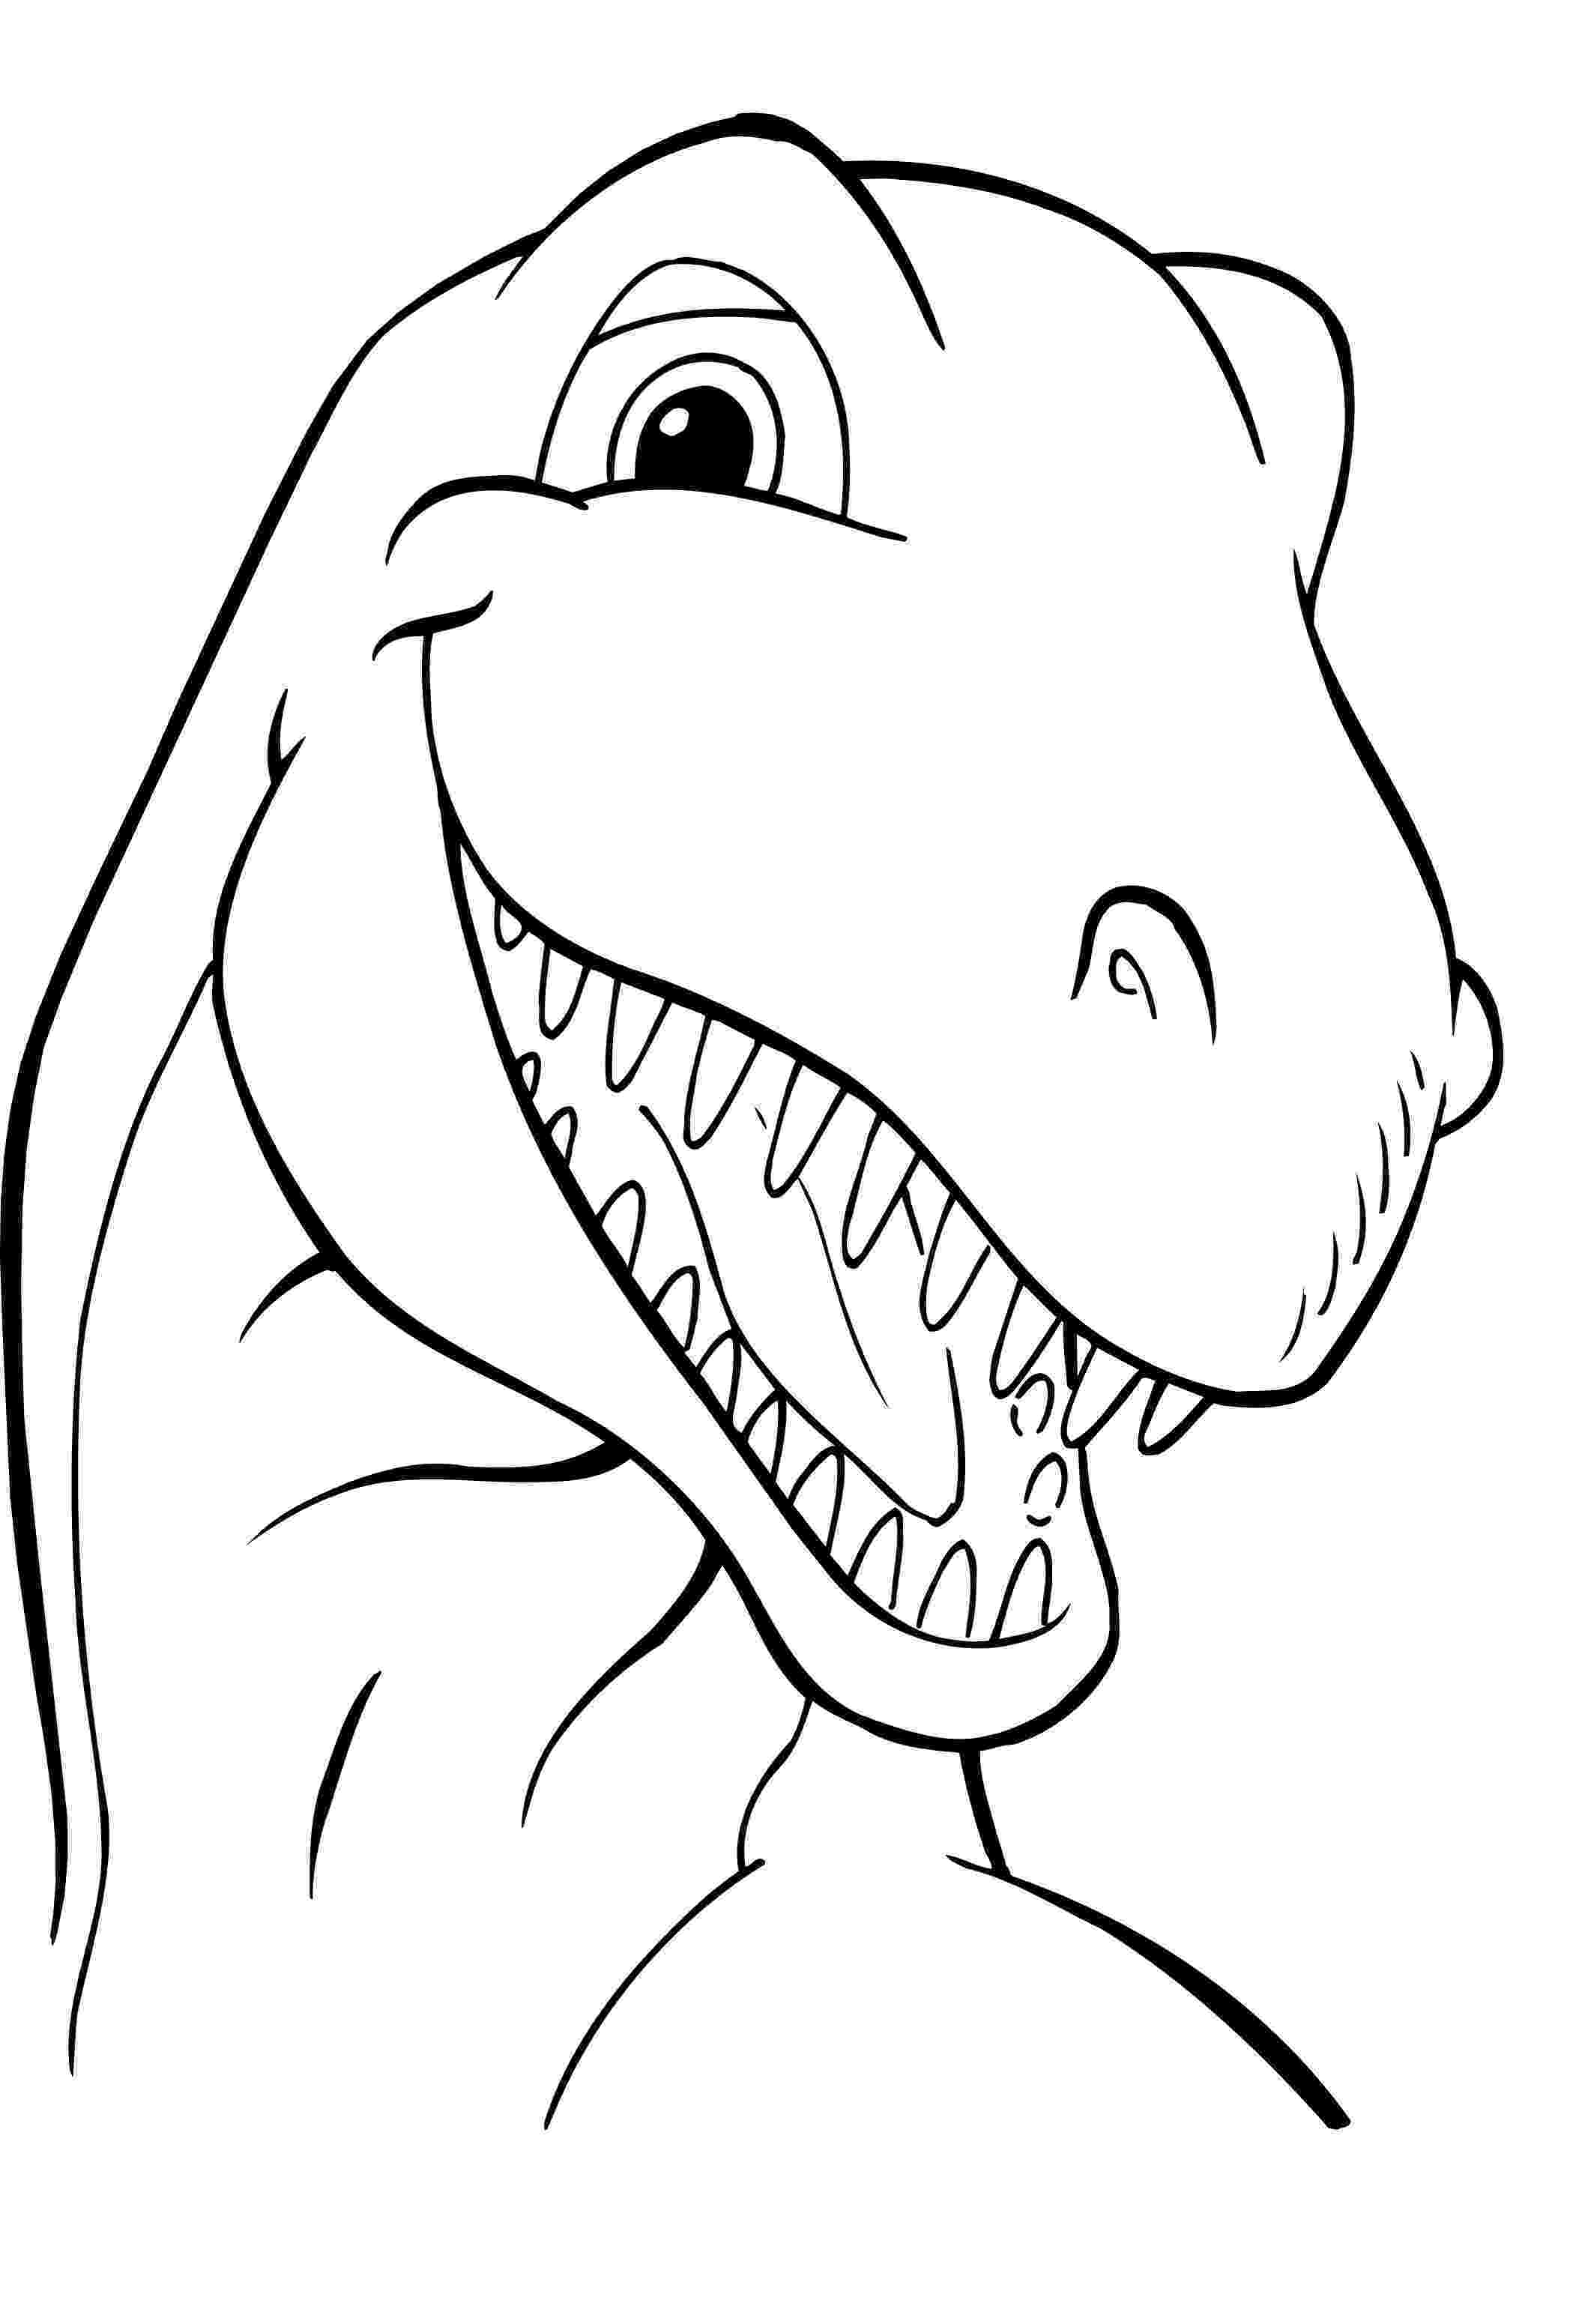 print dinosaur pictures free printable dinosaur coloring pages for kids dinosaur print pictures 1 1